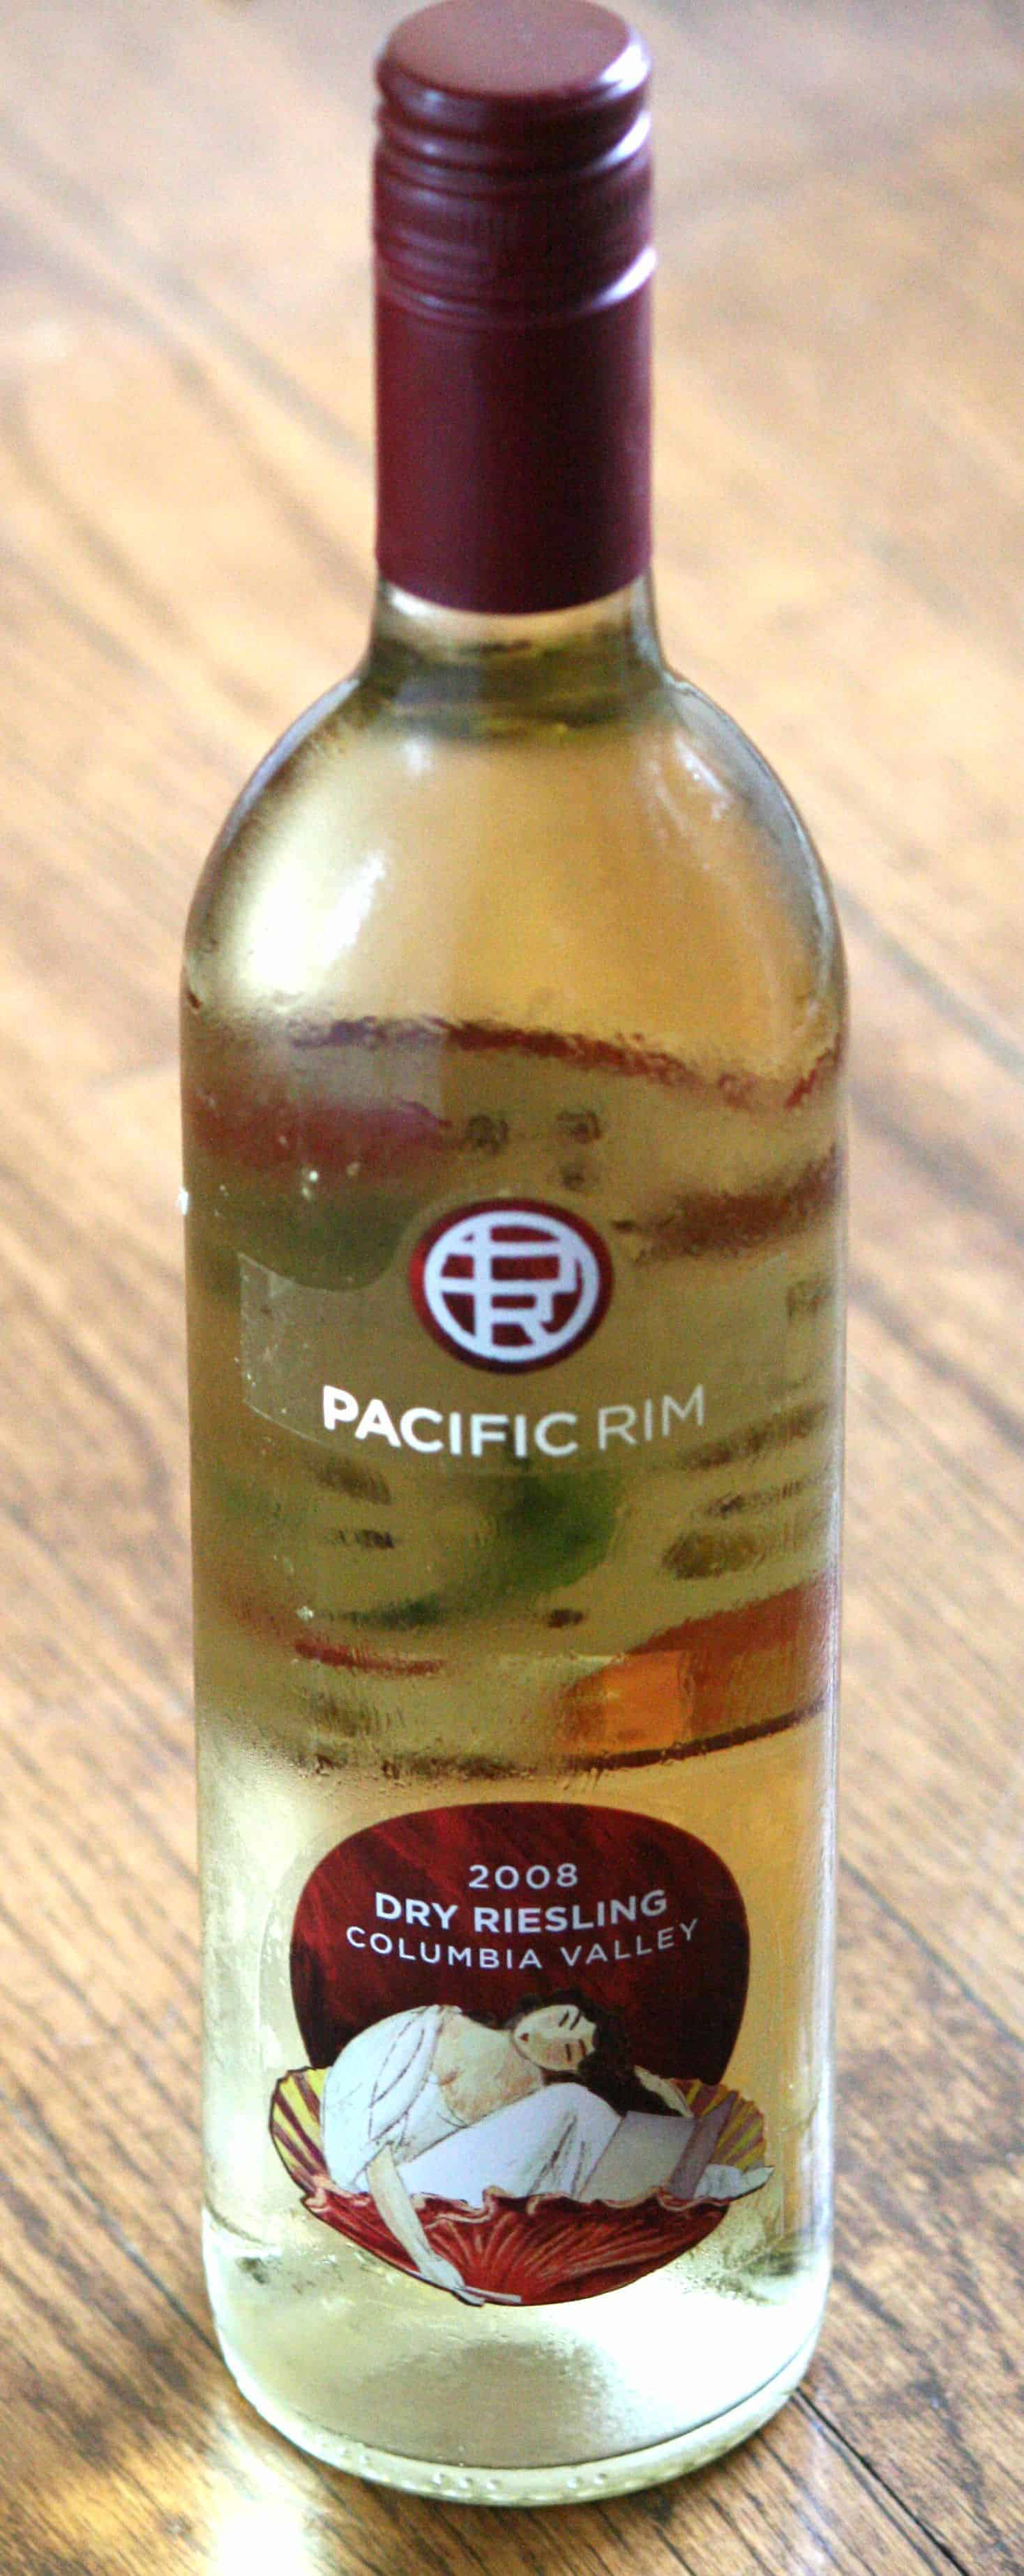 Pacific Rim 2008 Dry Riesling – A great new value wine